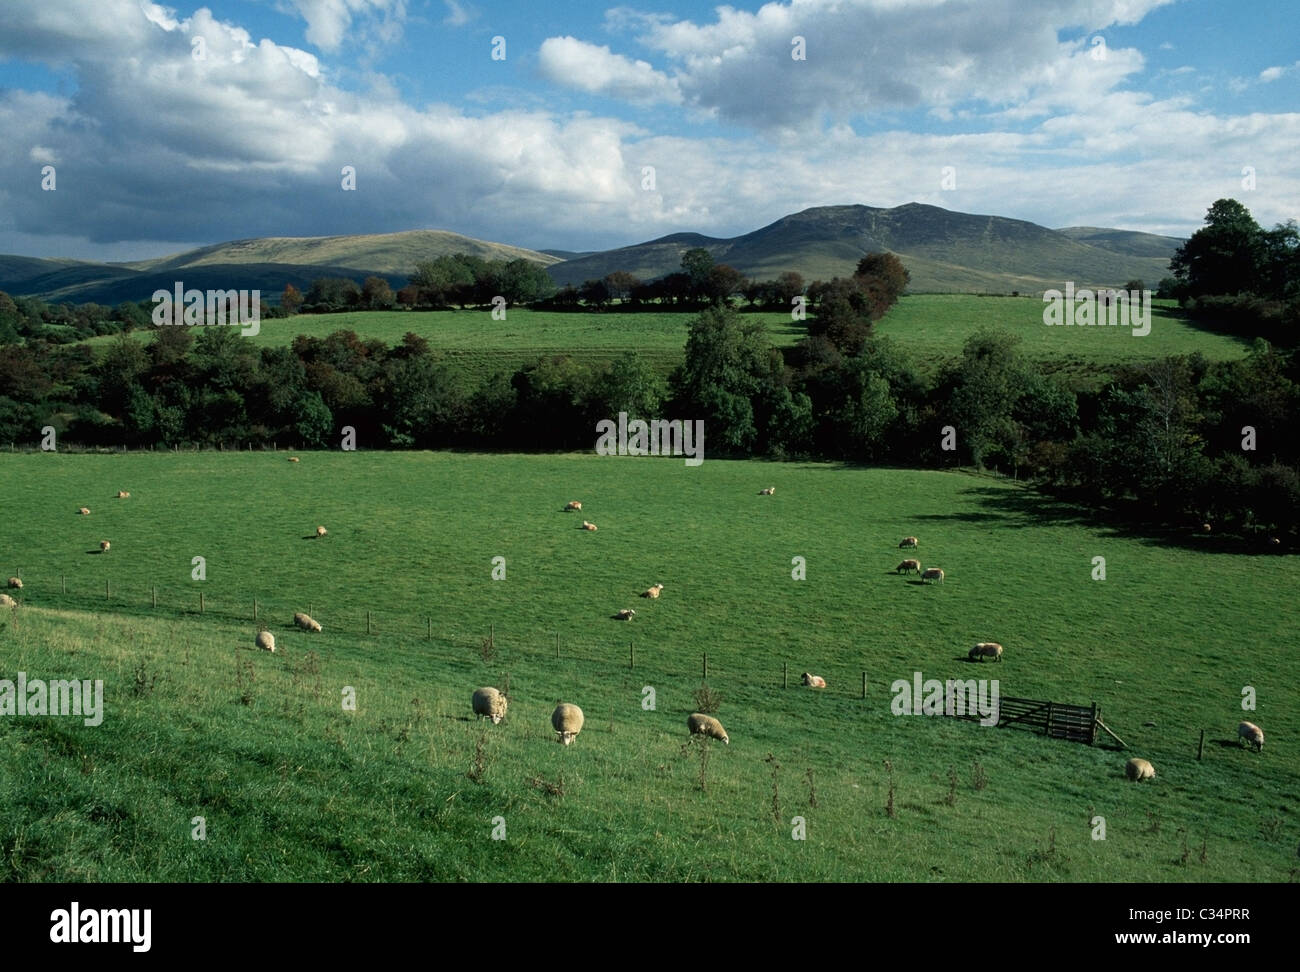 Mourne Mountains,Co Down,Northern Ireland;View Of Mountains,With Sheep Grazing In Paddock In Foreground - Stock Image